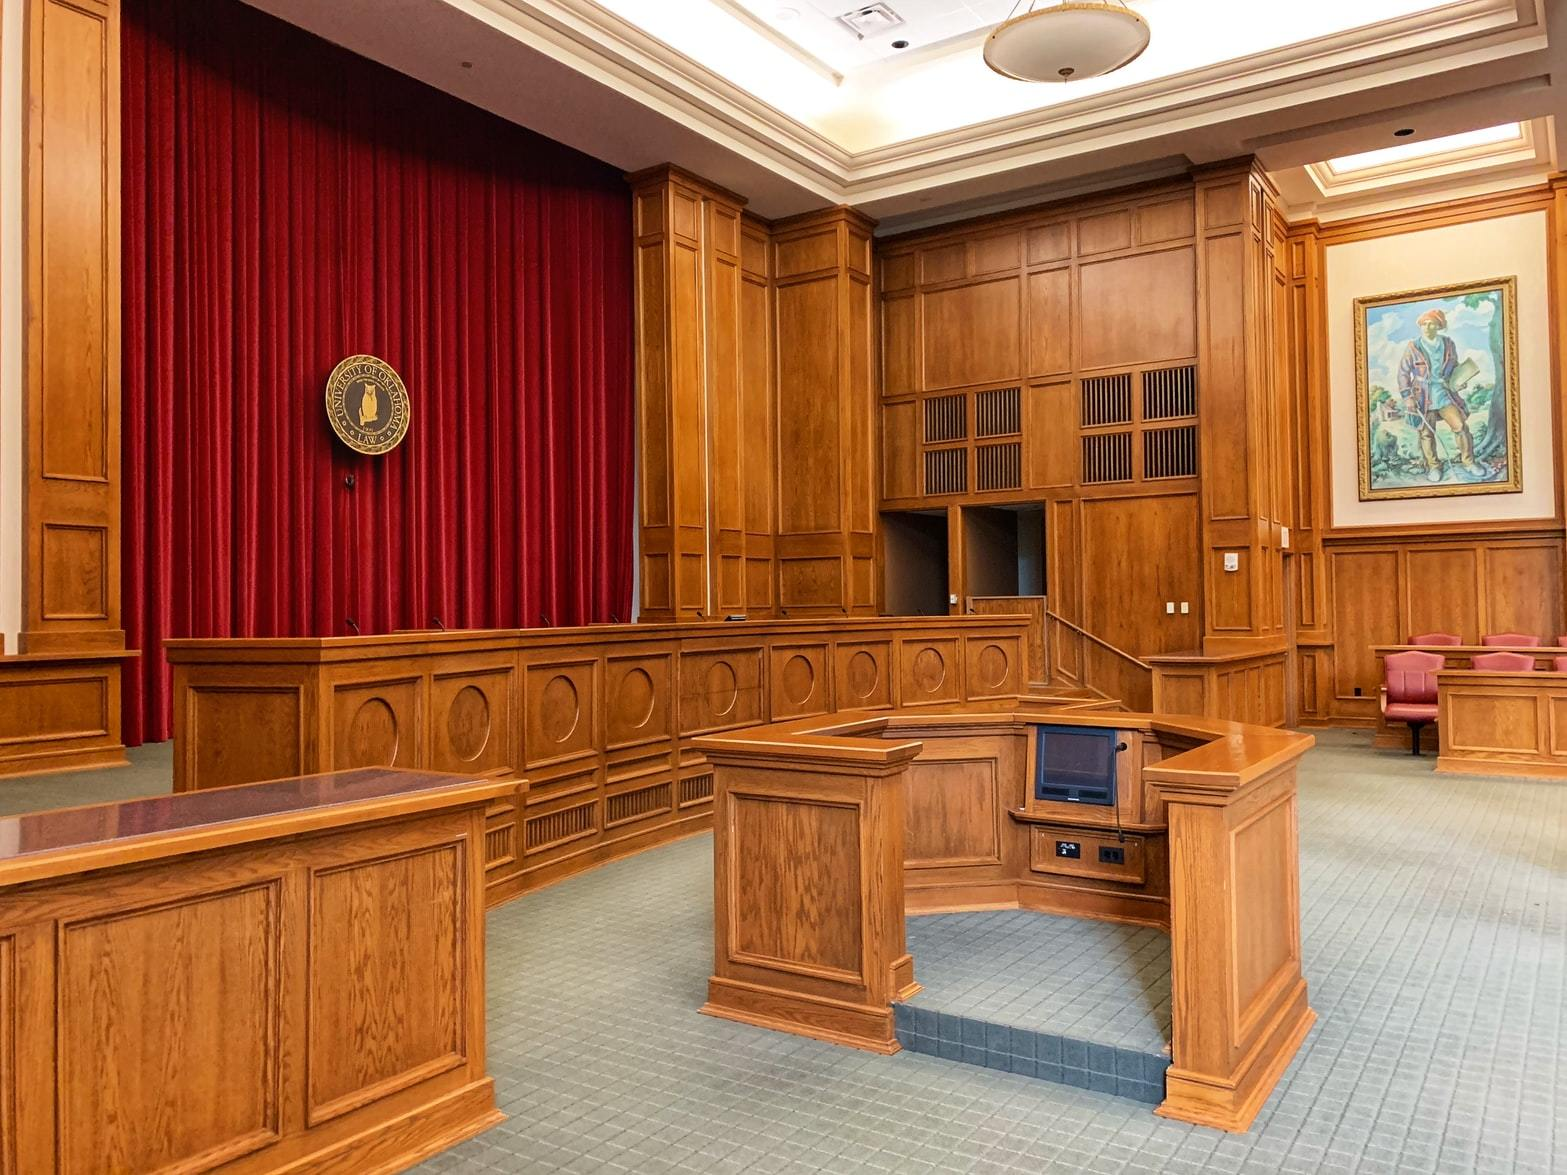 Empty court room